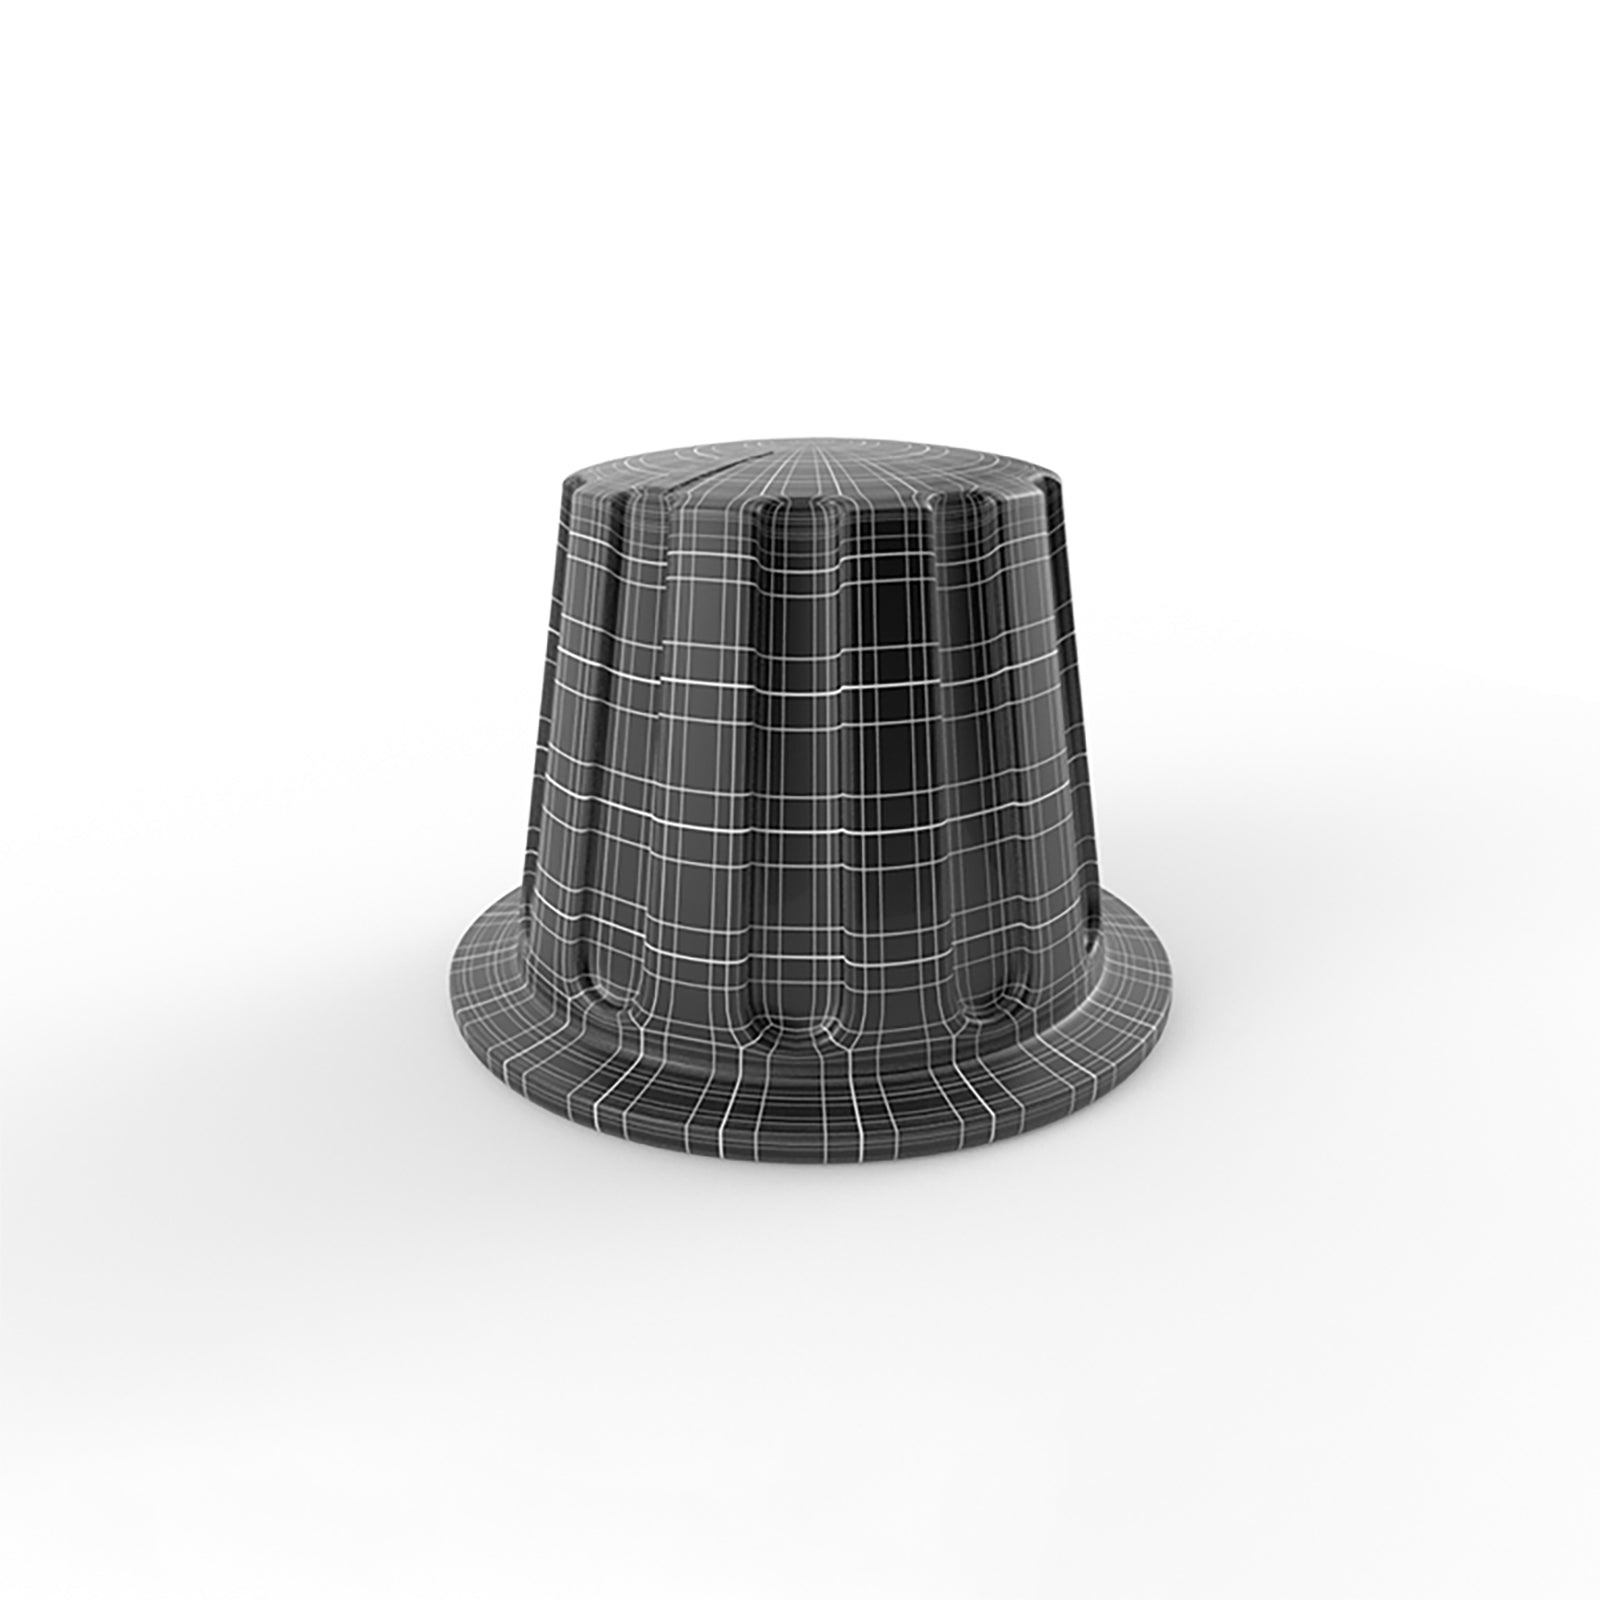 standart ribbed audio knob 3d model mesh